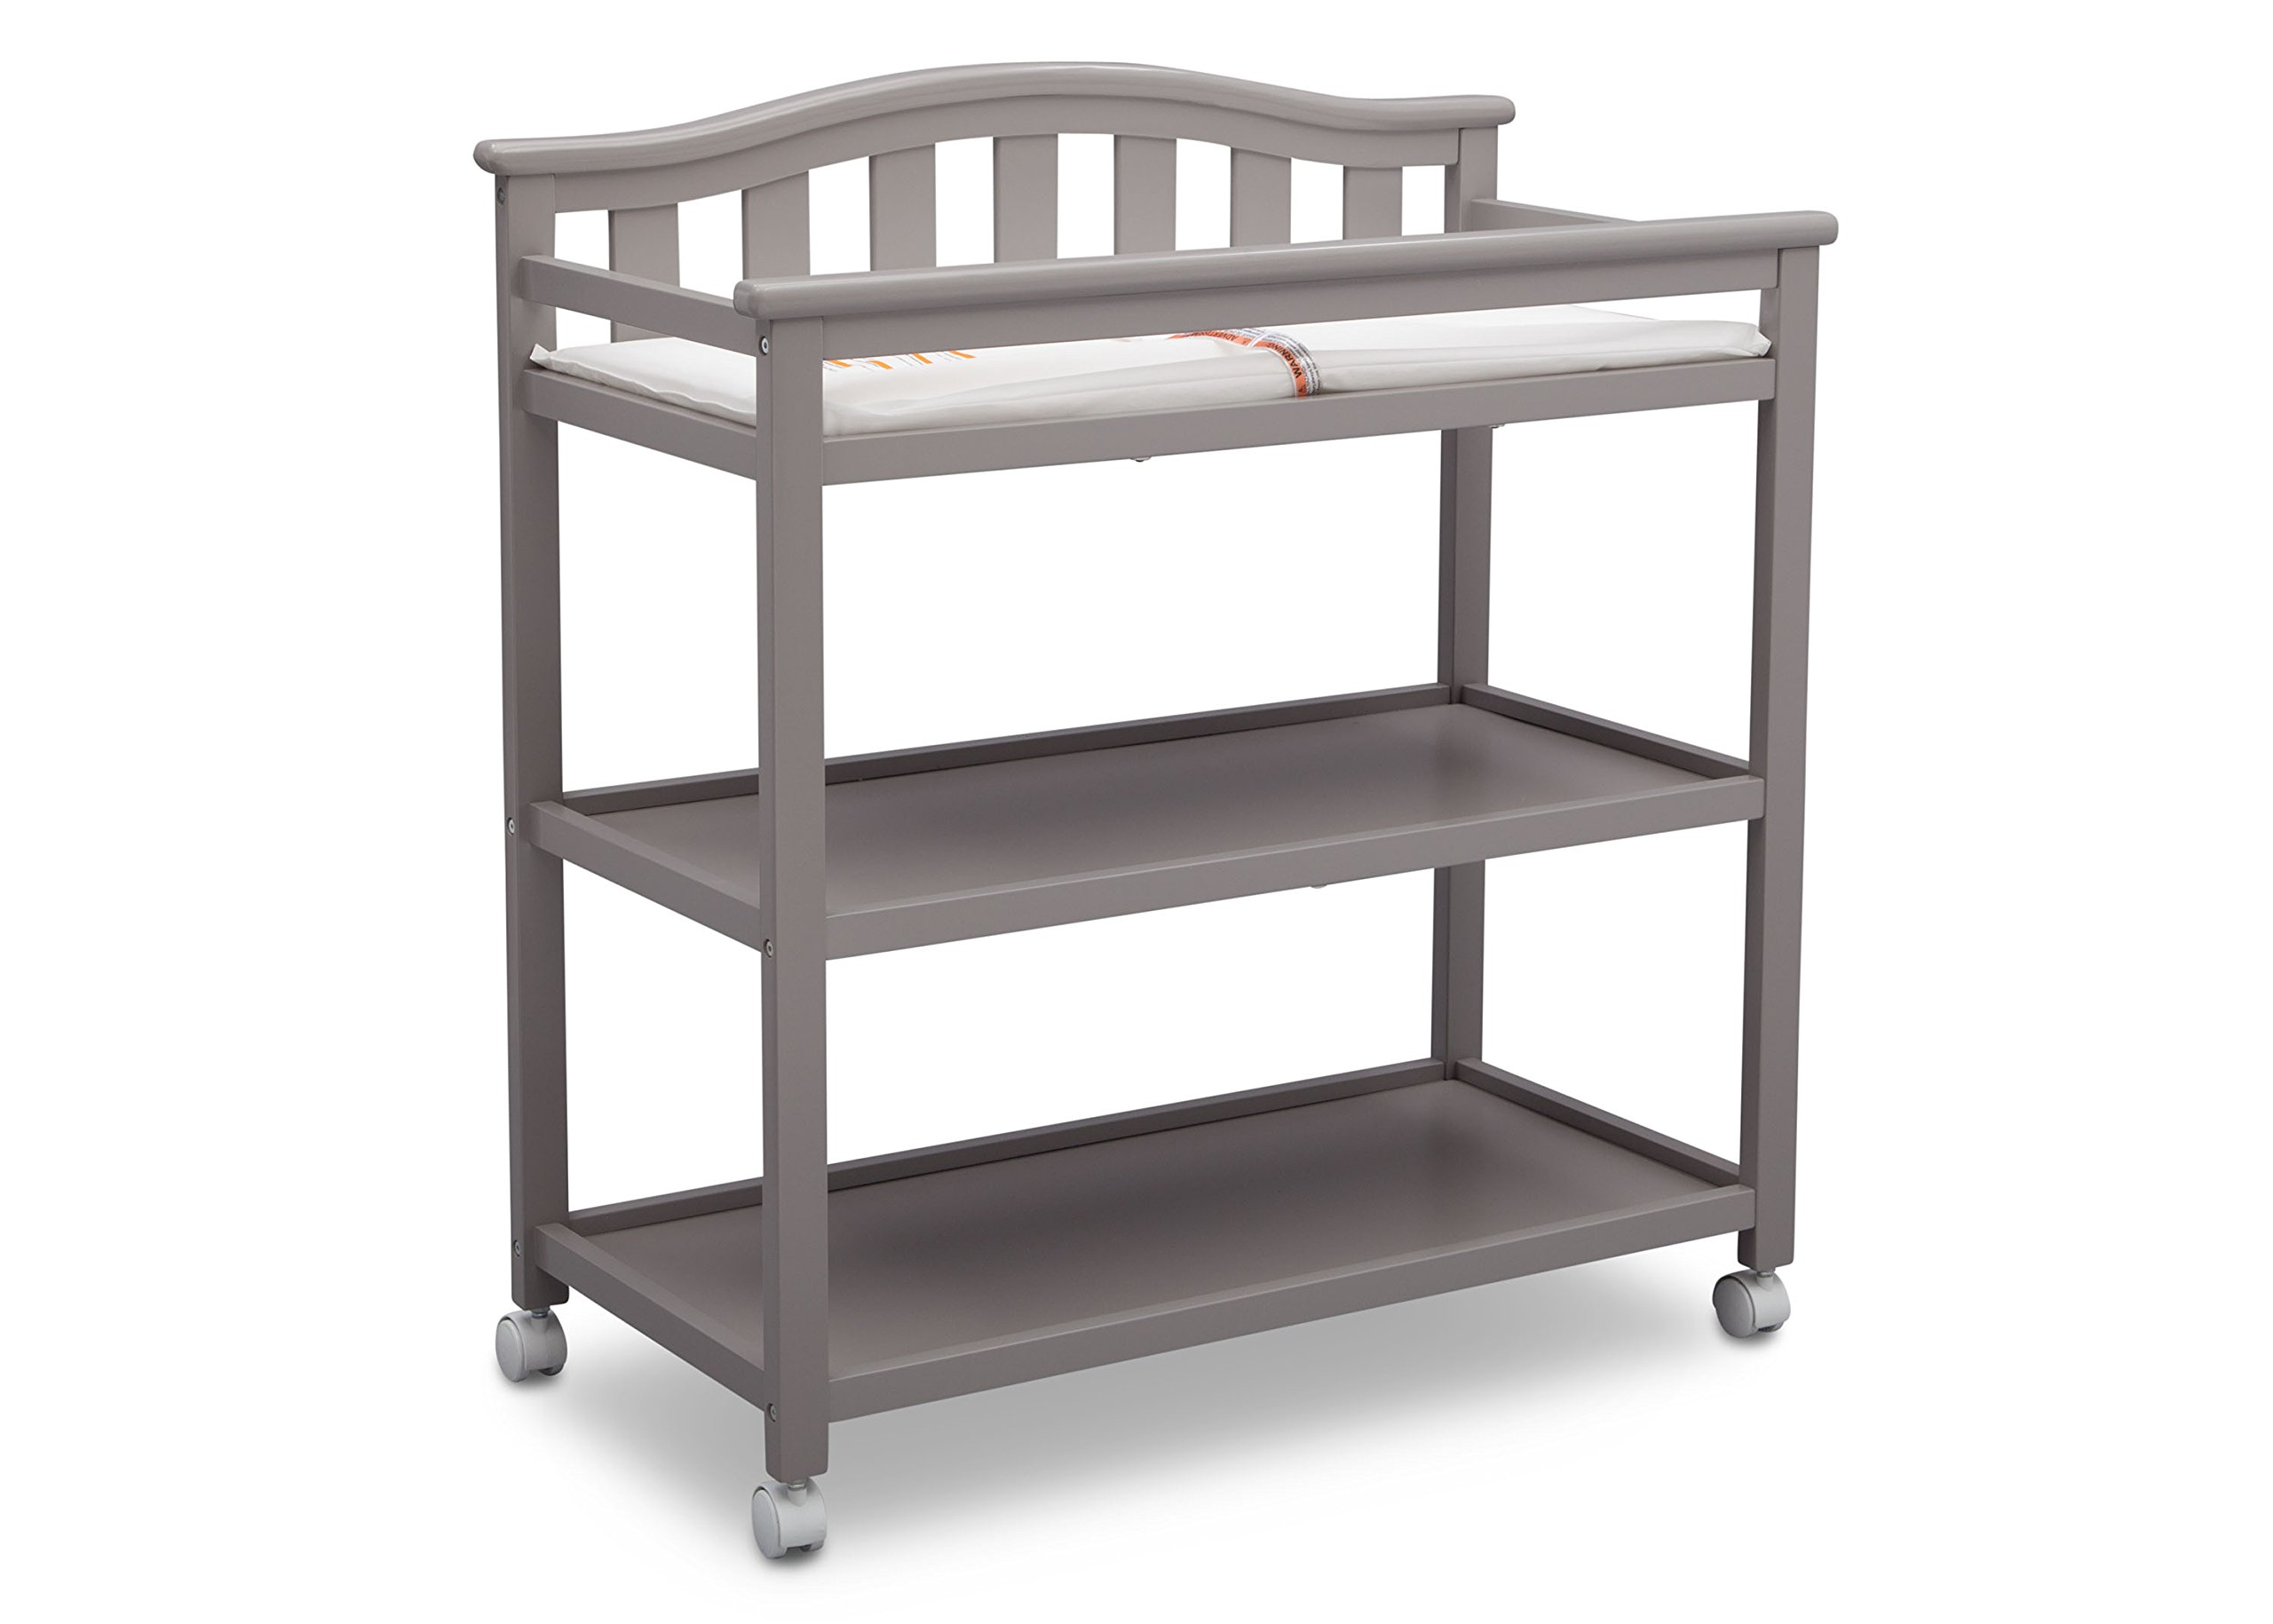 Delta Children Bell Top Changing Table with Casters, Grey